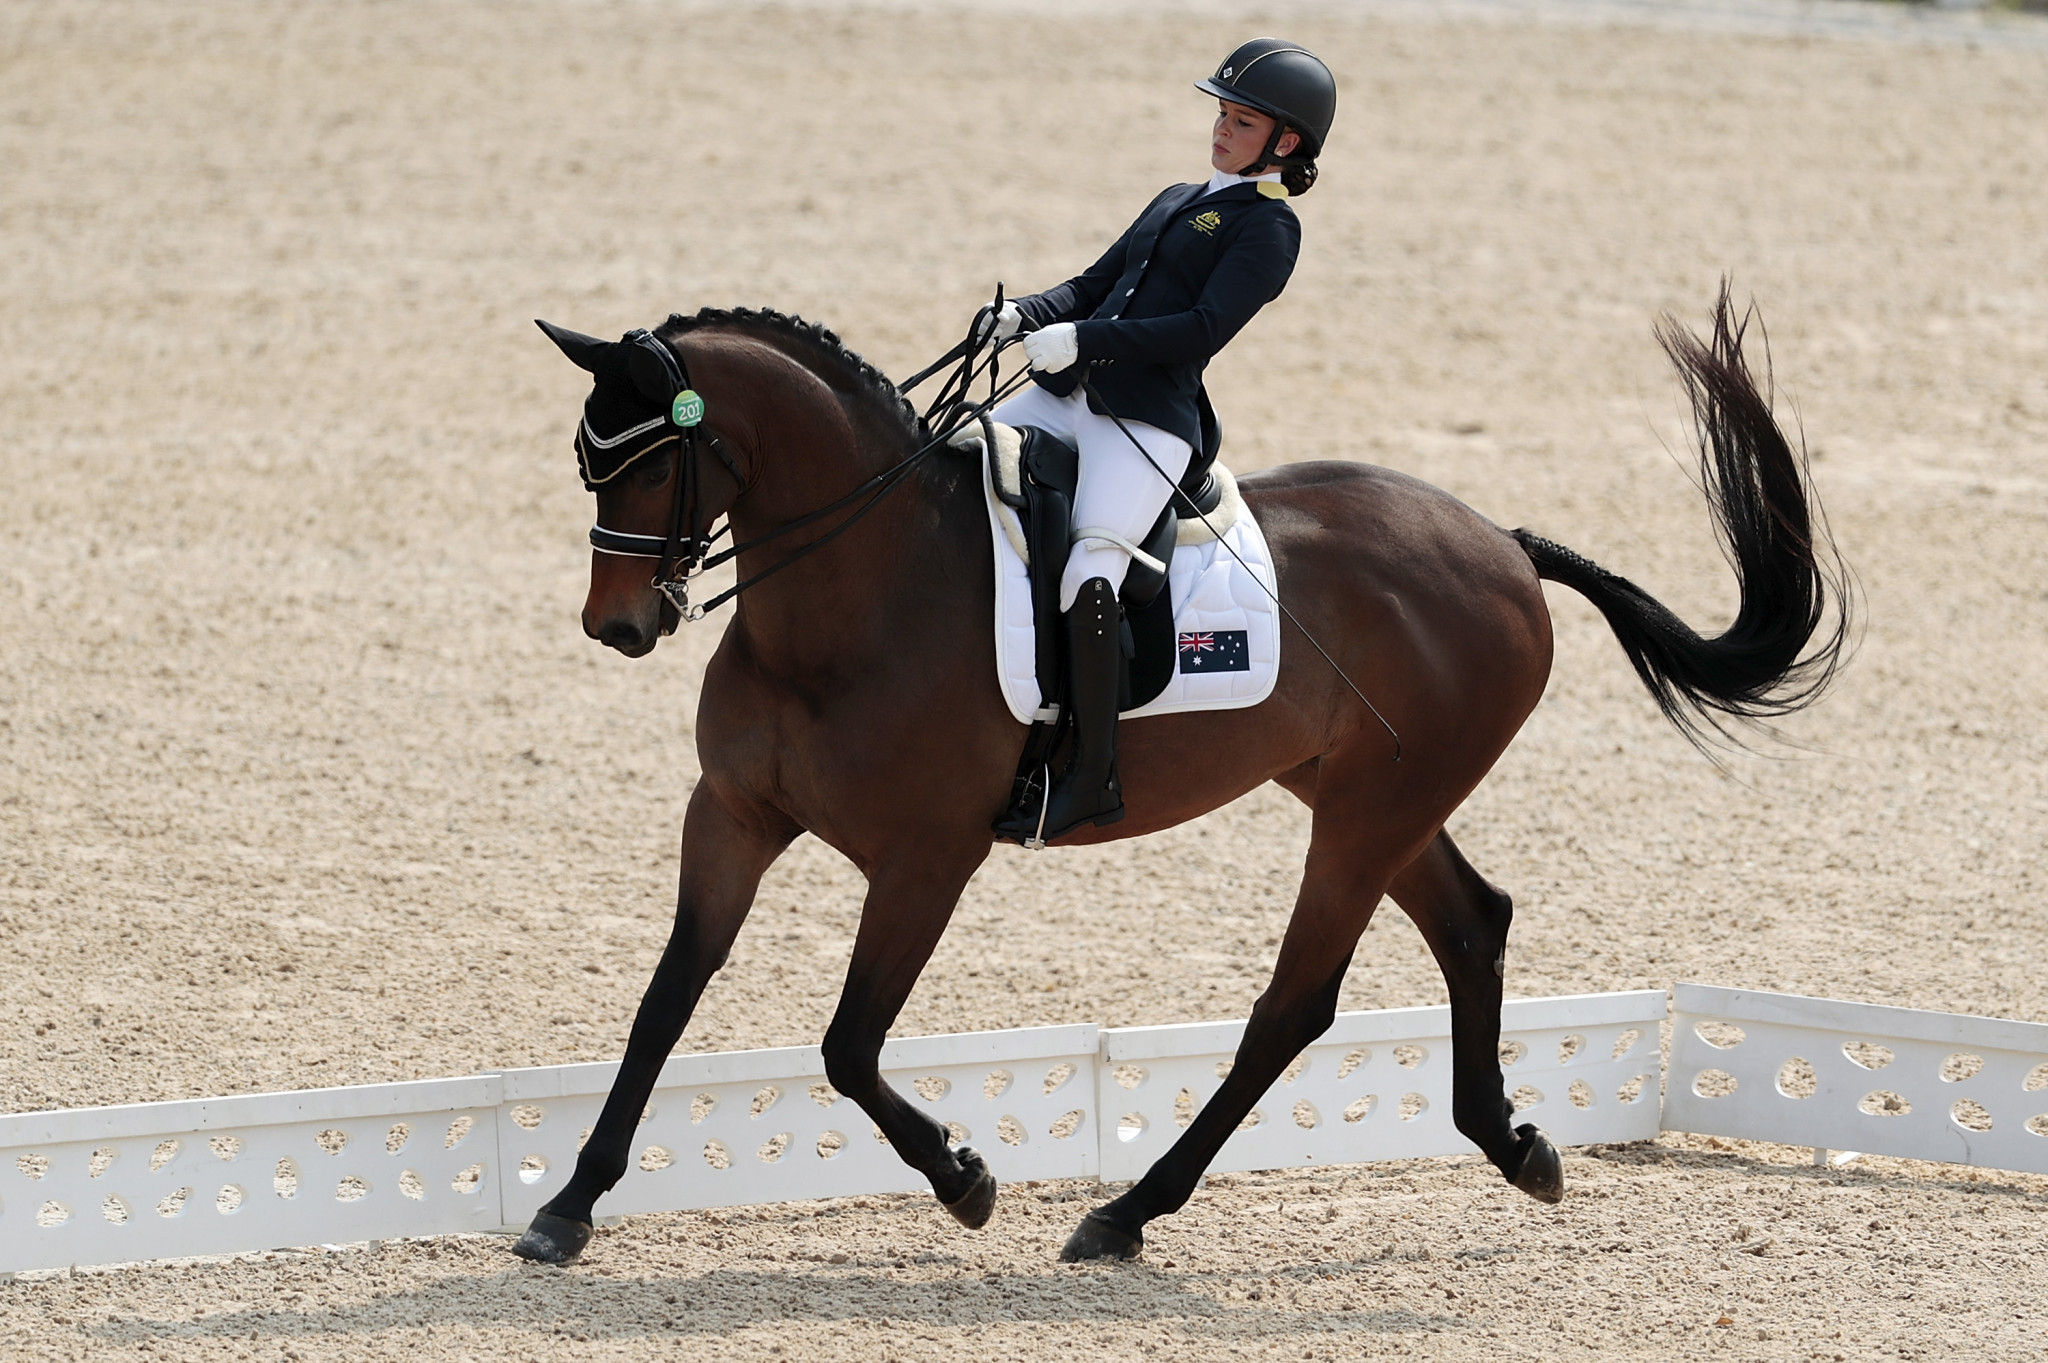 The dressage team event at the Tokyo 2020 Paralympics will take on a different format ©Getty Images